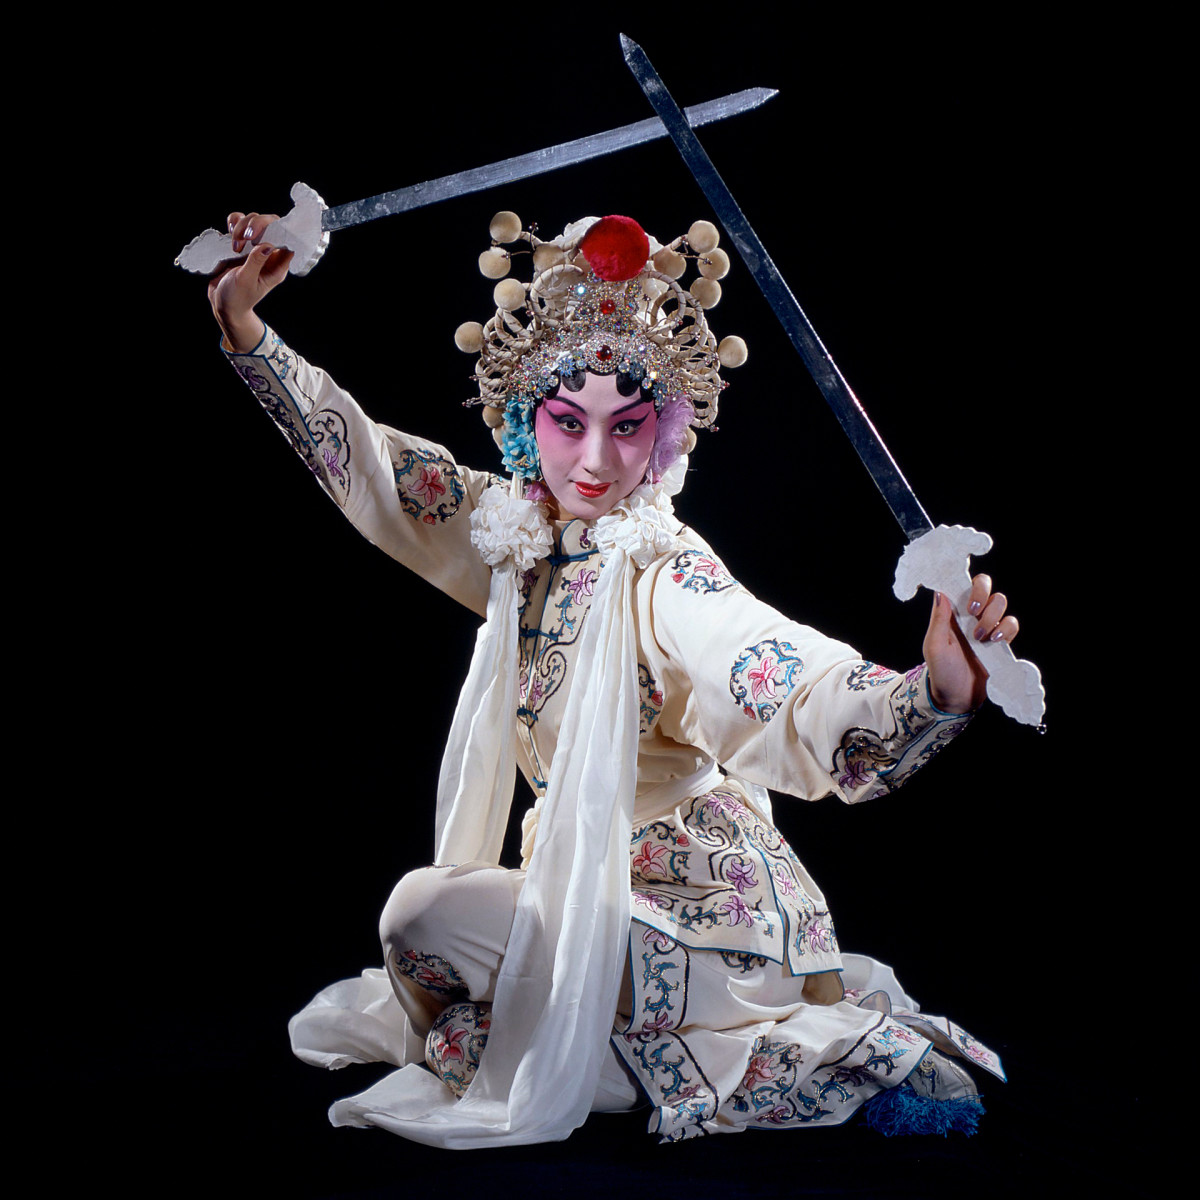 An actress plays the role of the White Snake in Baisha Zhuan (The Legend of White Snake) in a Chinese opera, 2000.